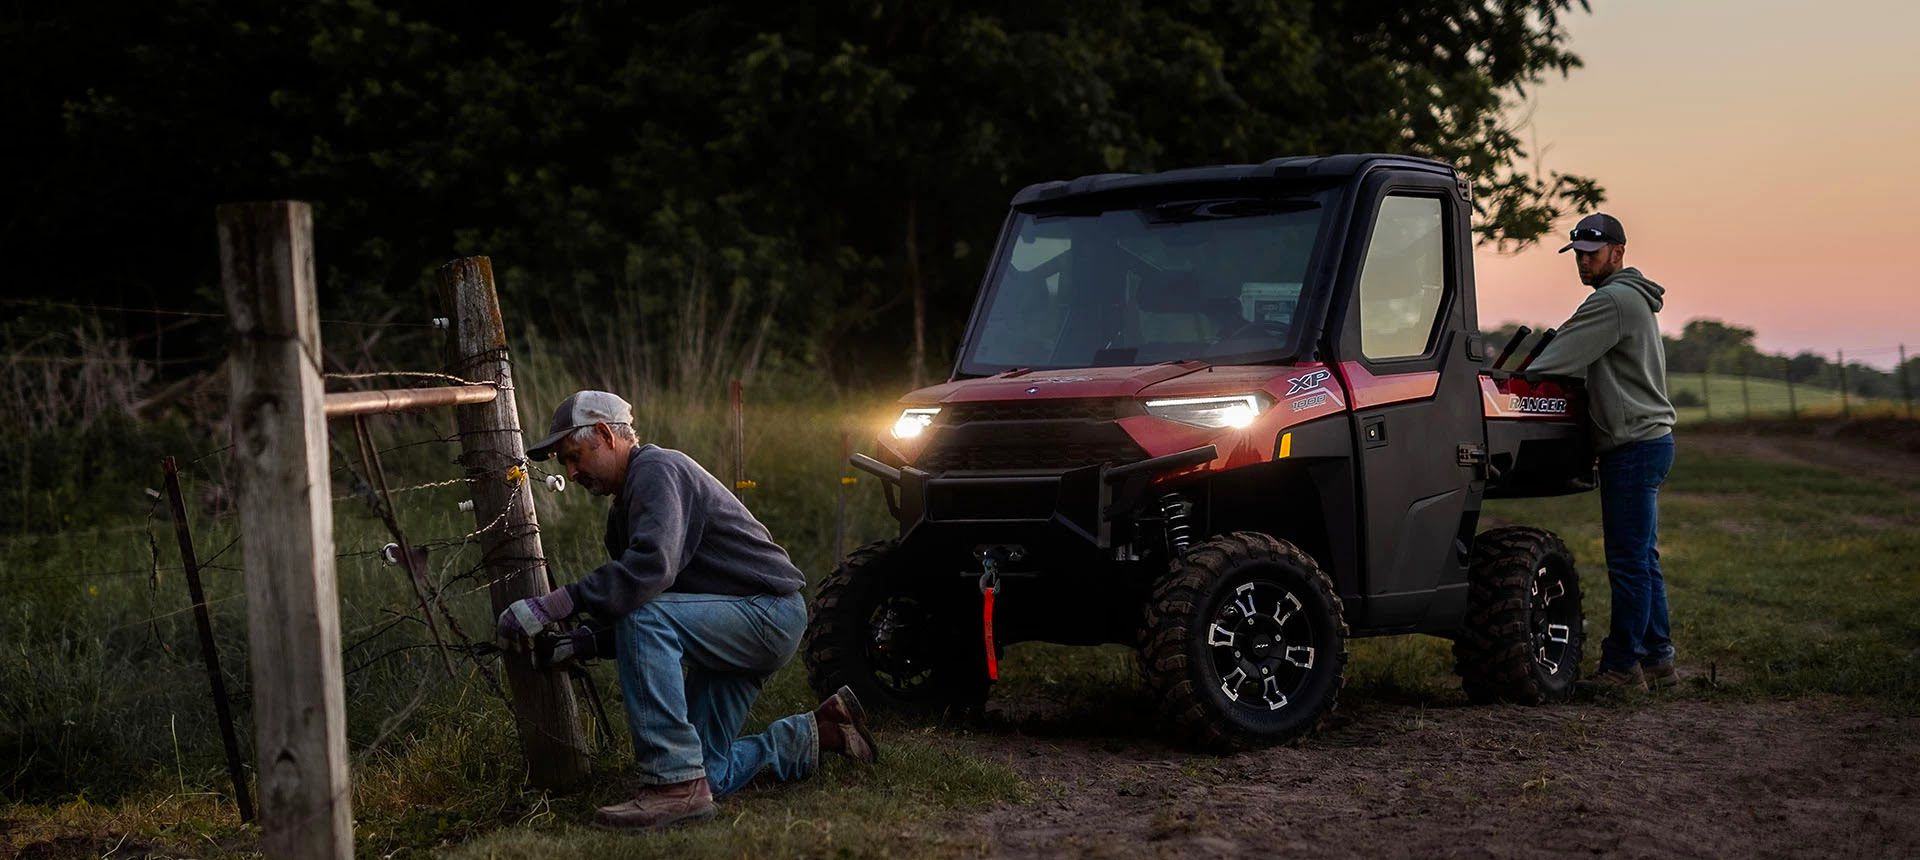 With an enclosed cab, HVAC, and electric windows, the 2022 Polaris Ranger XP 1000 NorthStar Edition Ultimate is as close as you can get to a small pickup without springing for a small pickup.